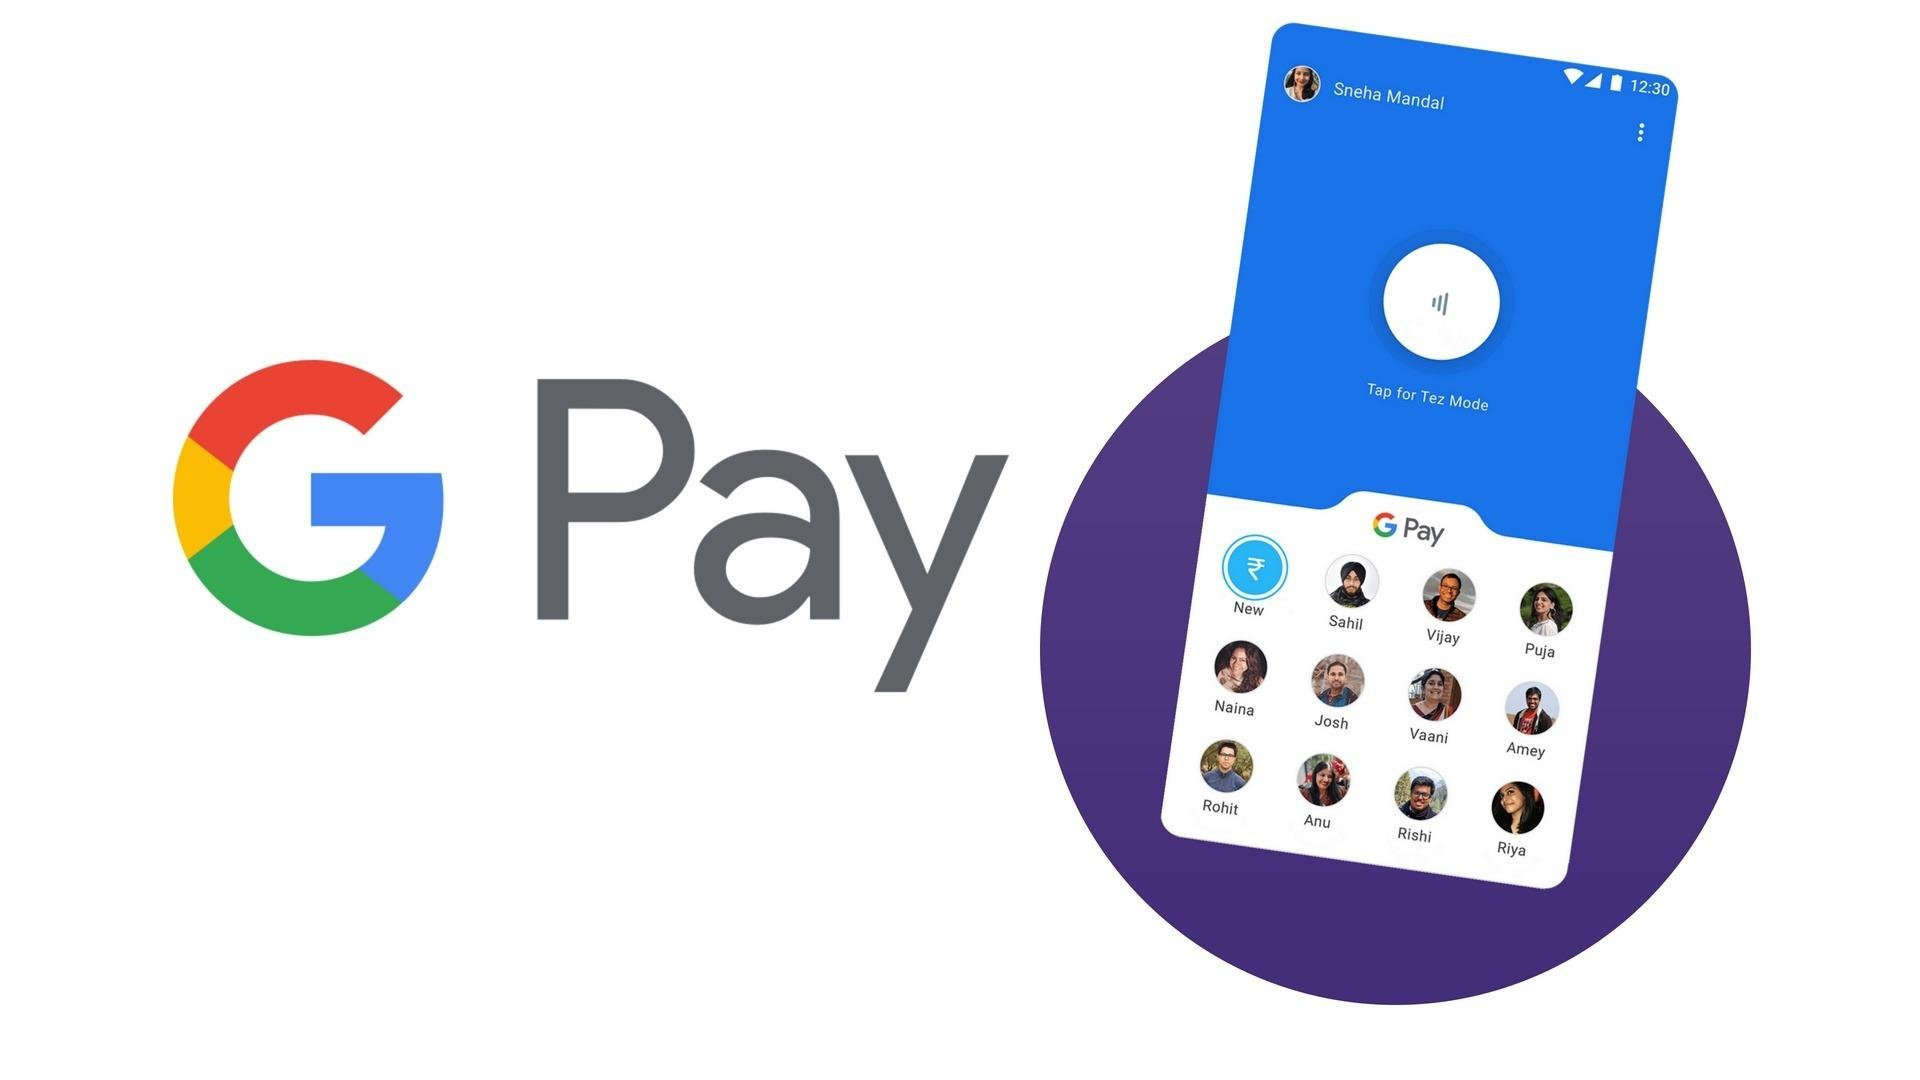 Google Pay includes support for 24 new banks in 23 countries